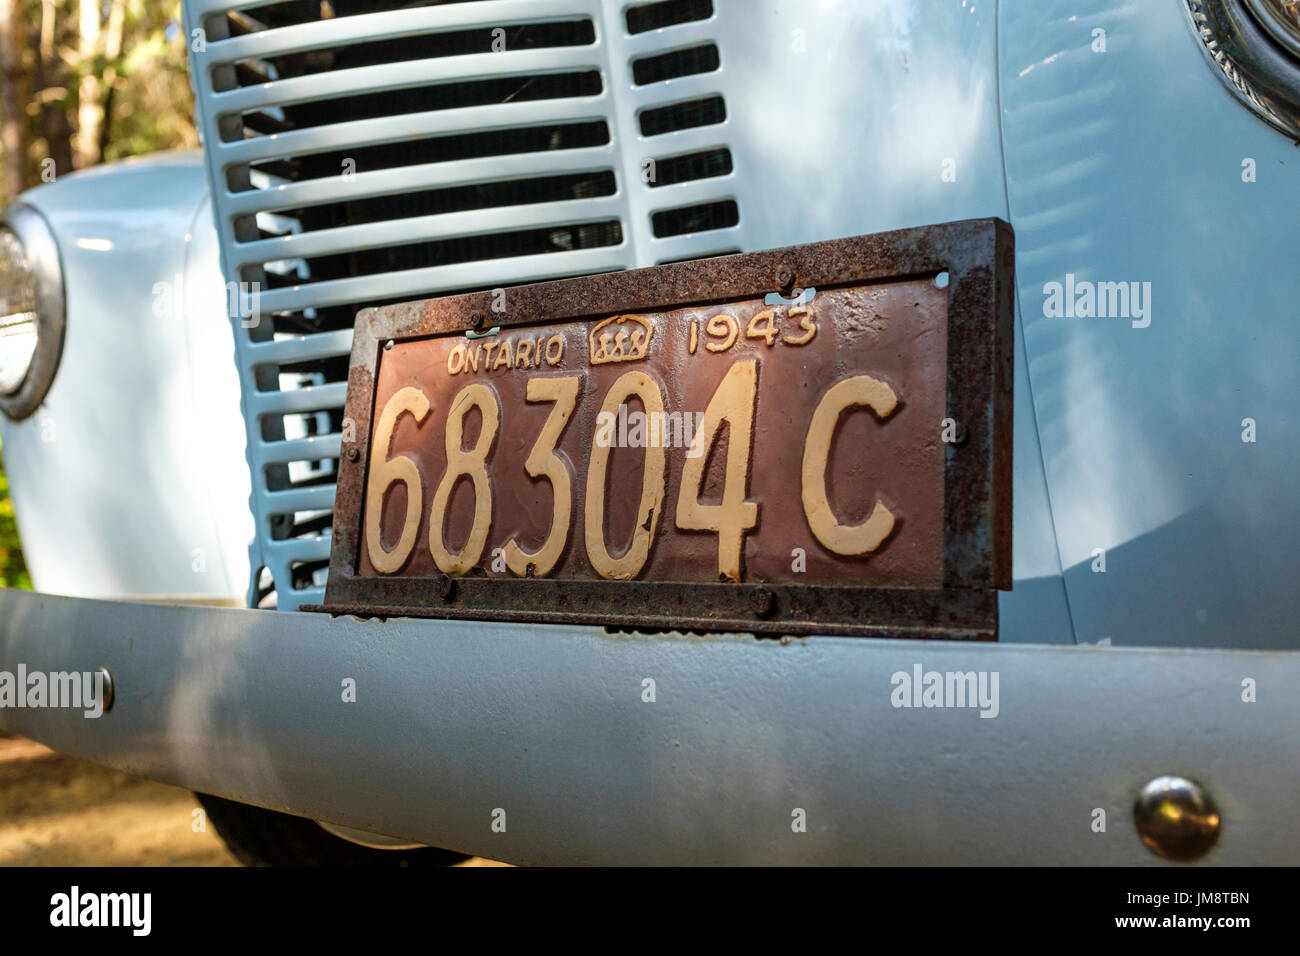 Old Ontario number plate licence plate license plate on an old car ...